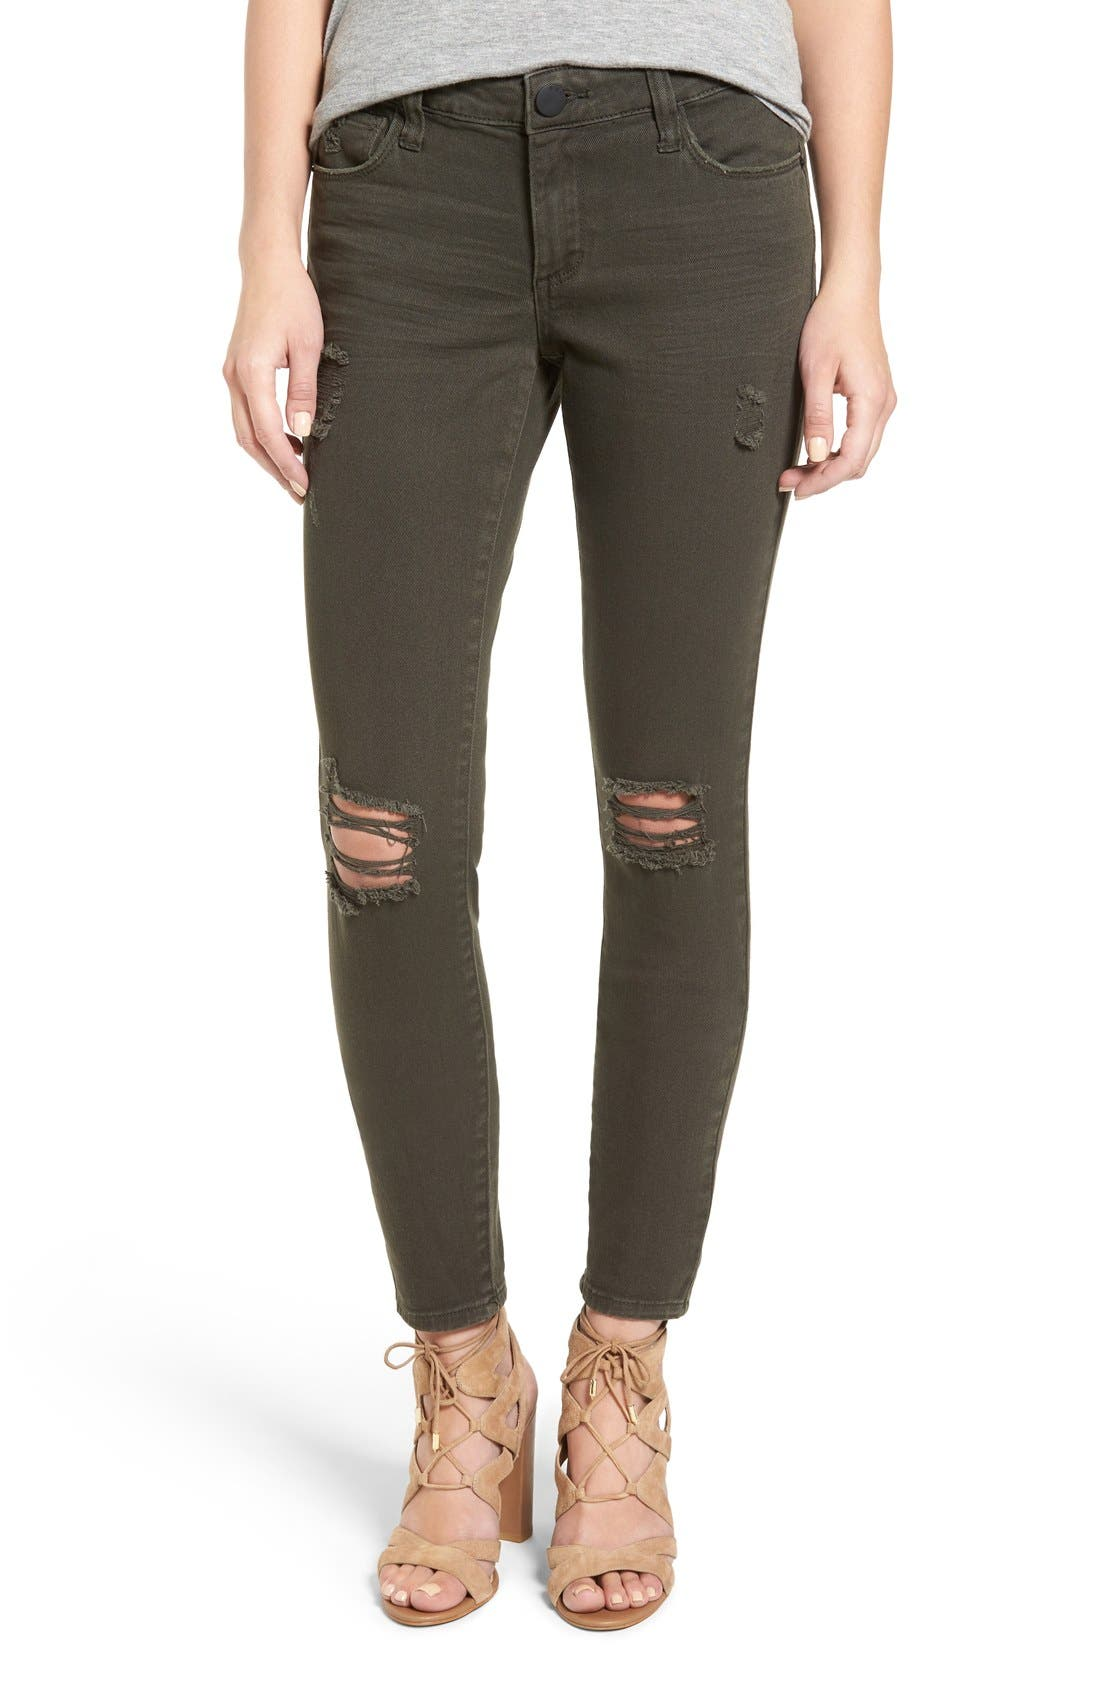 Alternate Image 1 Selected - STS Blue 'Piper' Deconstructed Skinny Jeans (Dark Olive)